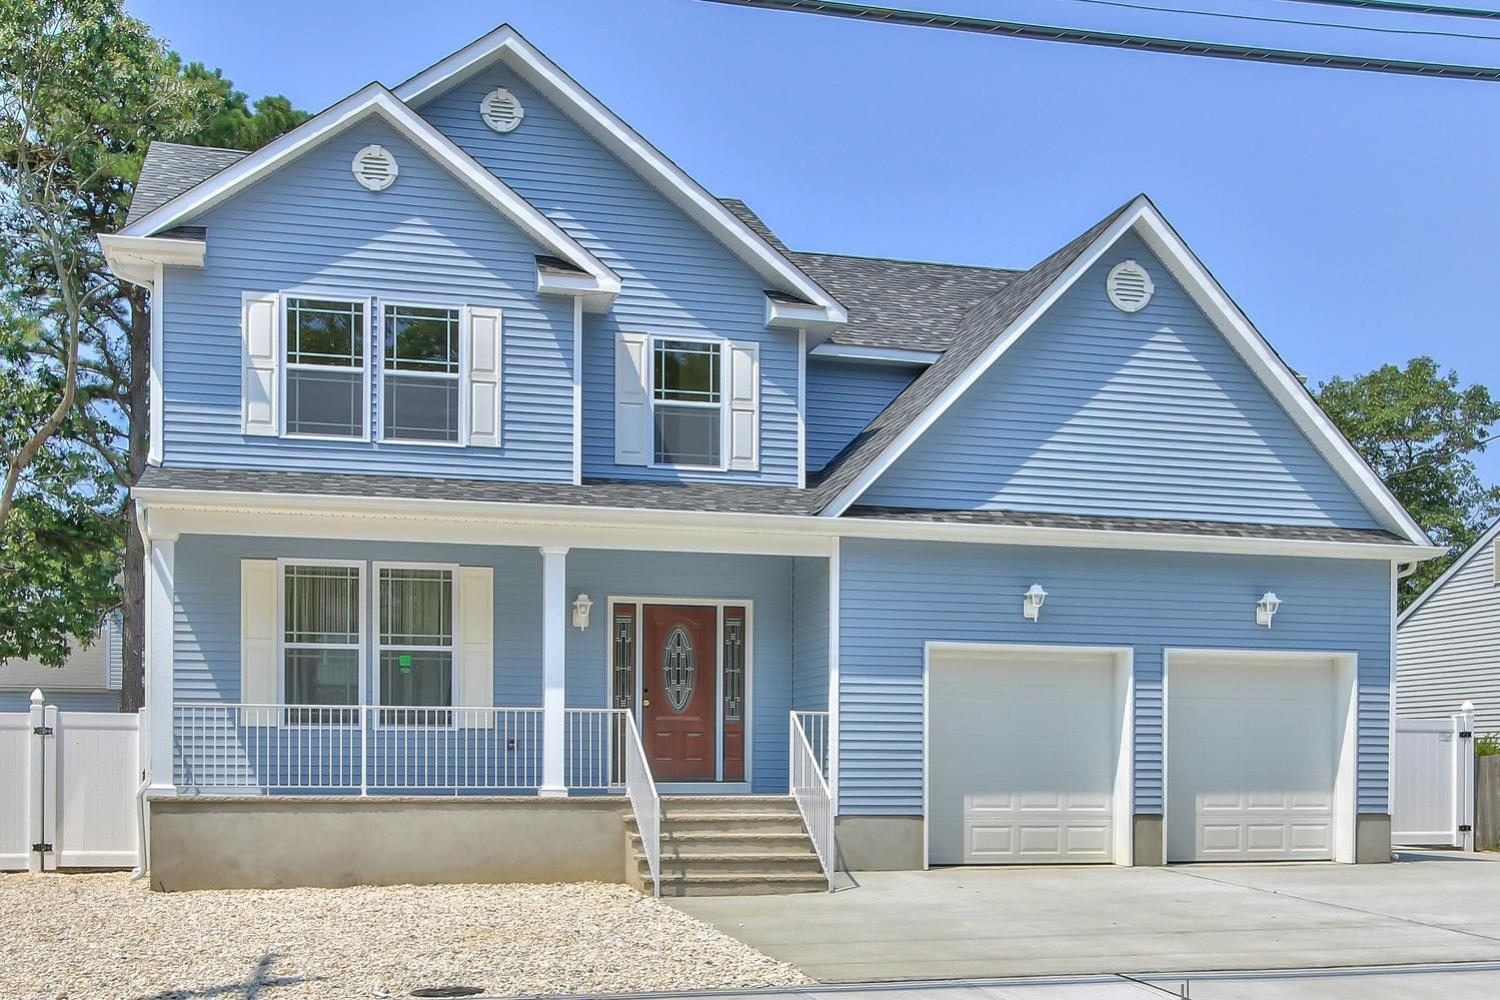 11 Bacall Way, Toms River, NJ 08753 - Estimate and Home Details | Trulia